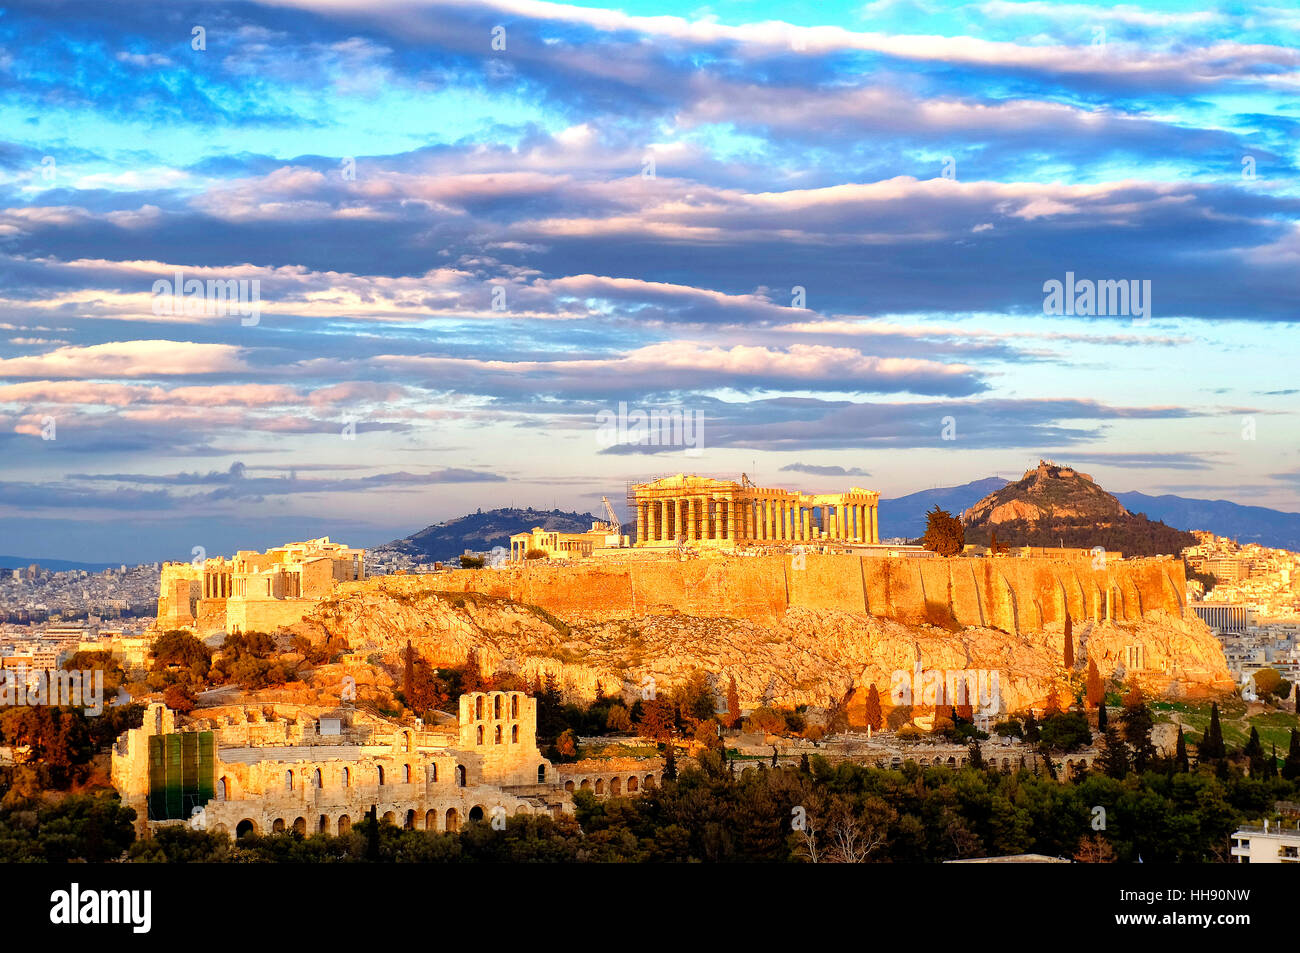 View of the Acropolis of Athens, Athens, Greece - Stock Image